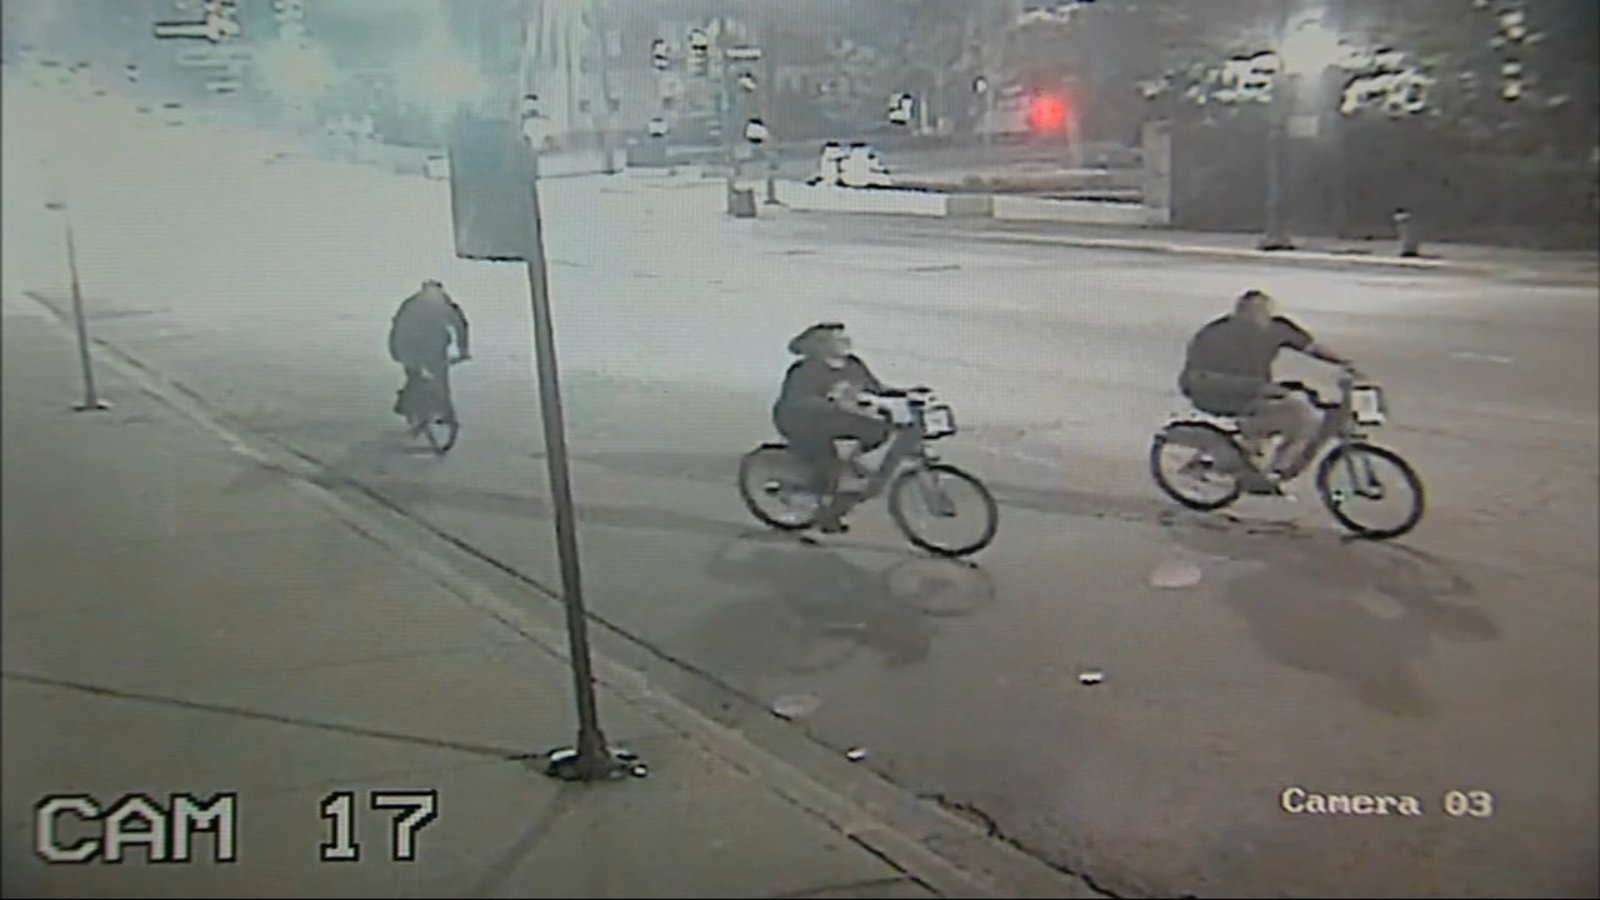 Divvy bicyclist critically injured in River North hit-and-run; surveillance video released